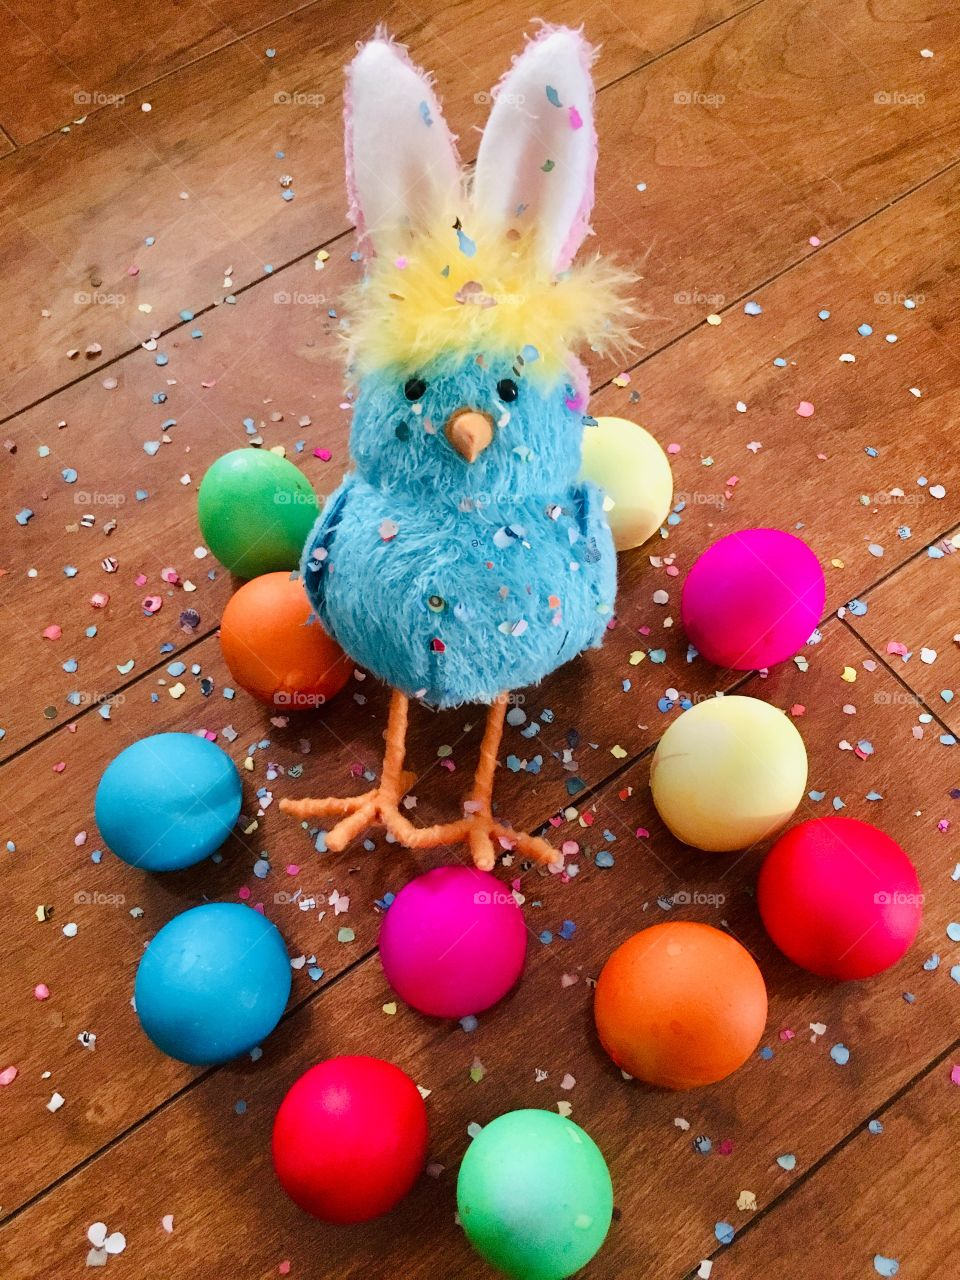 Bunny chick with colorful Easter eggs and confetti